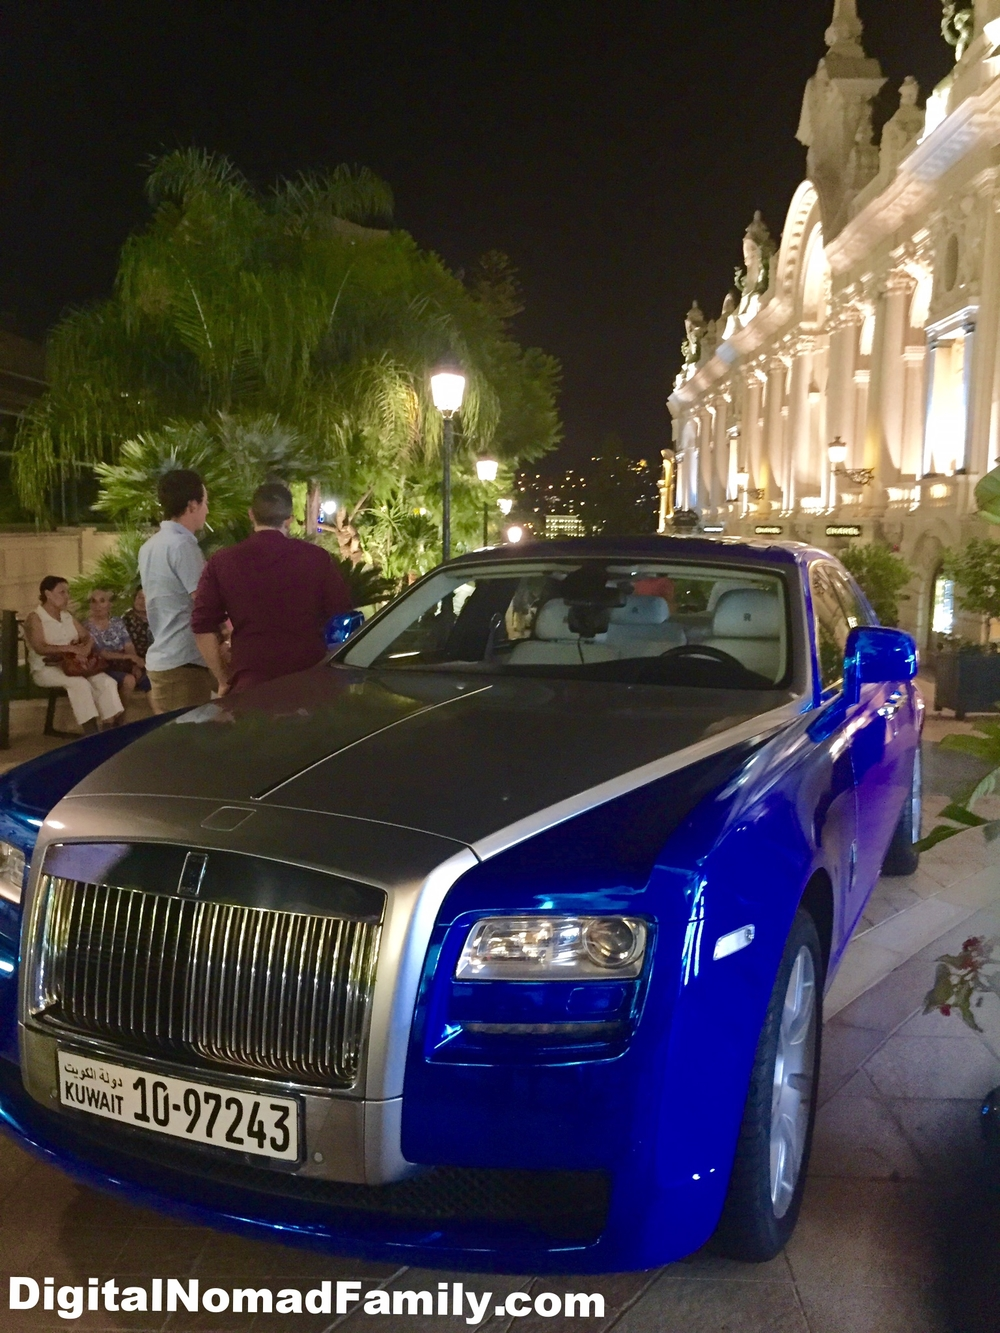 Monaco is filled with luxury cars... but no Uber!